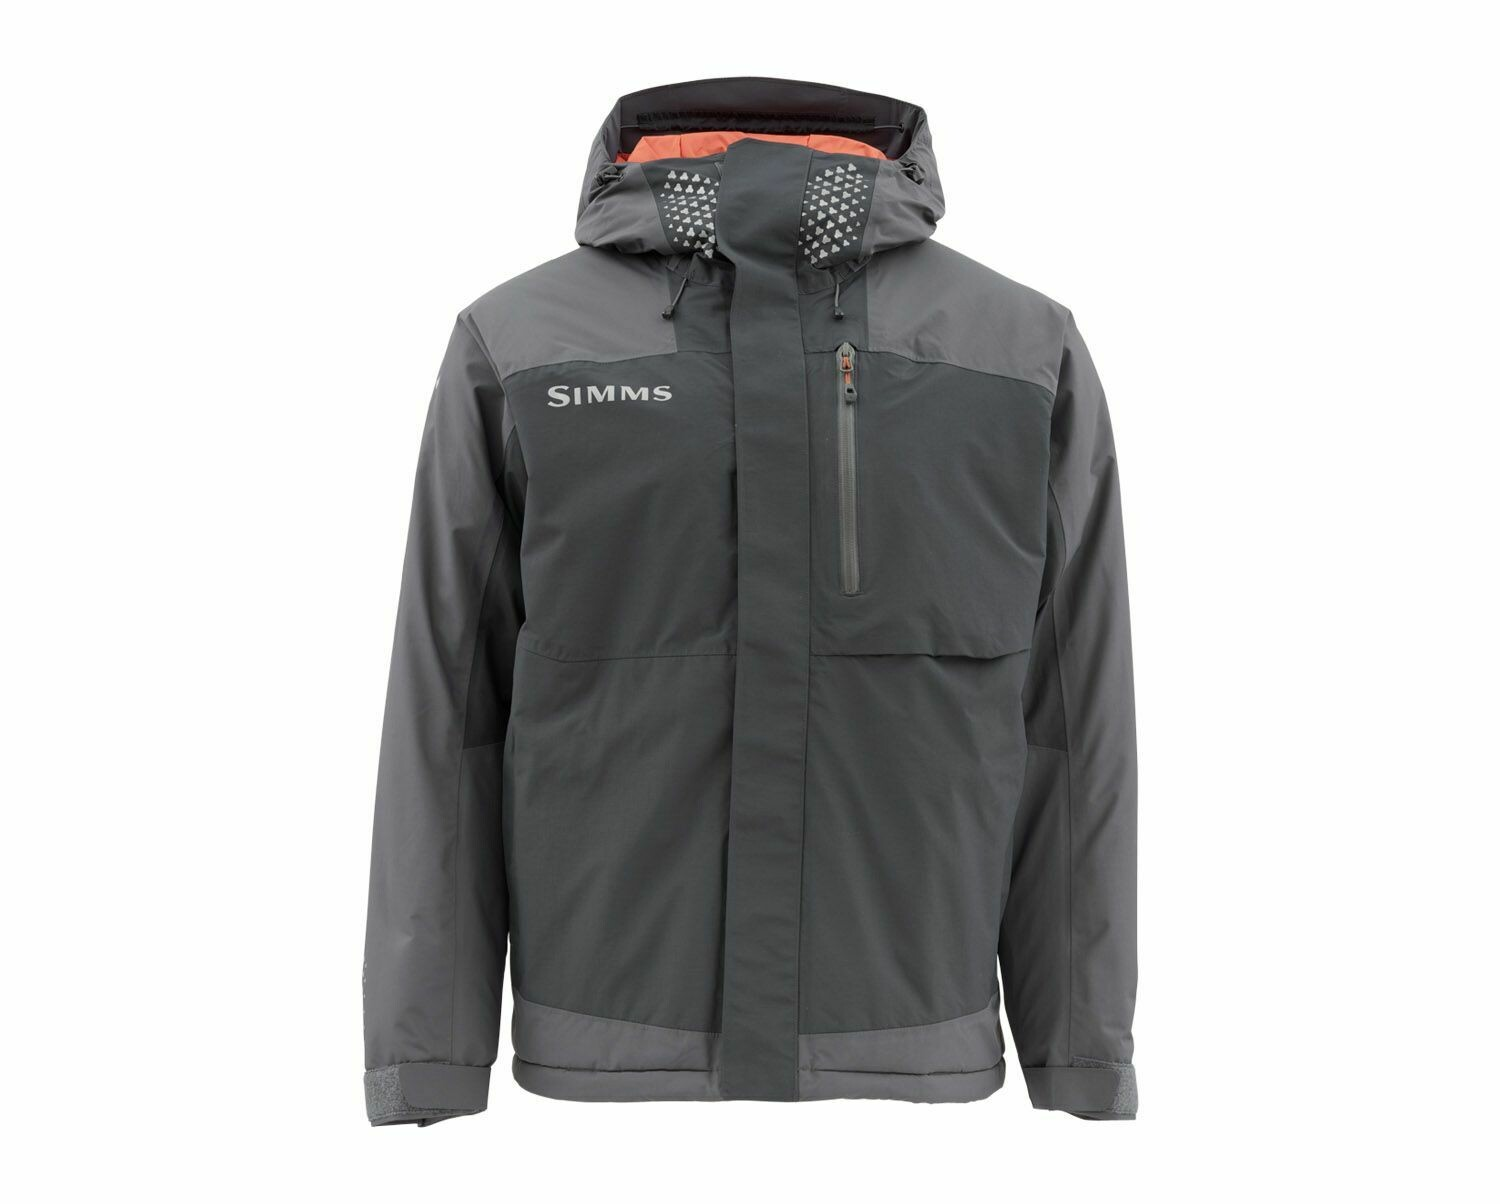 Simms Insulated Challenger Jacket CLOSEOUT